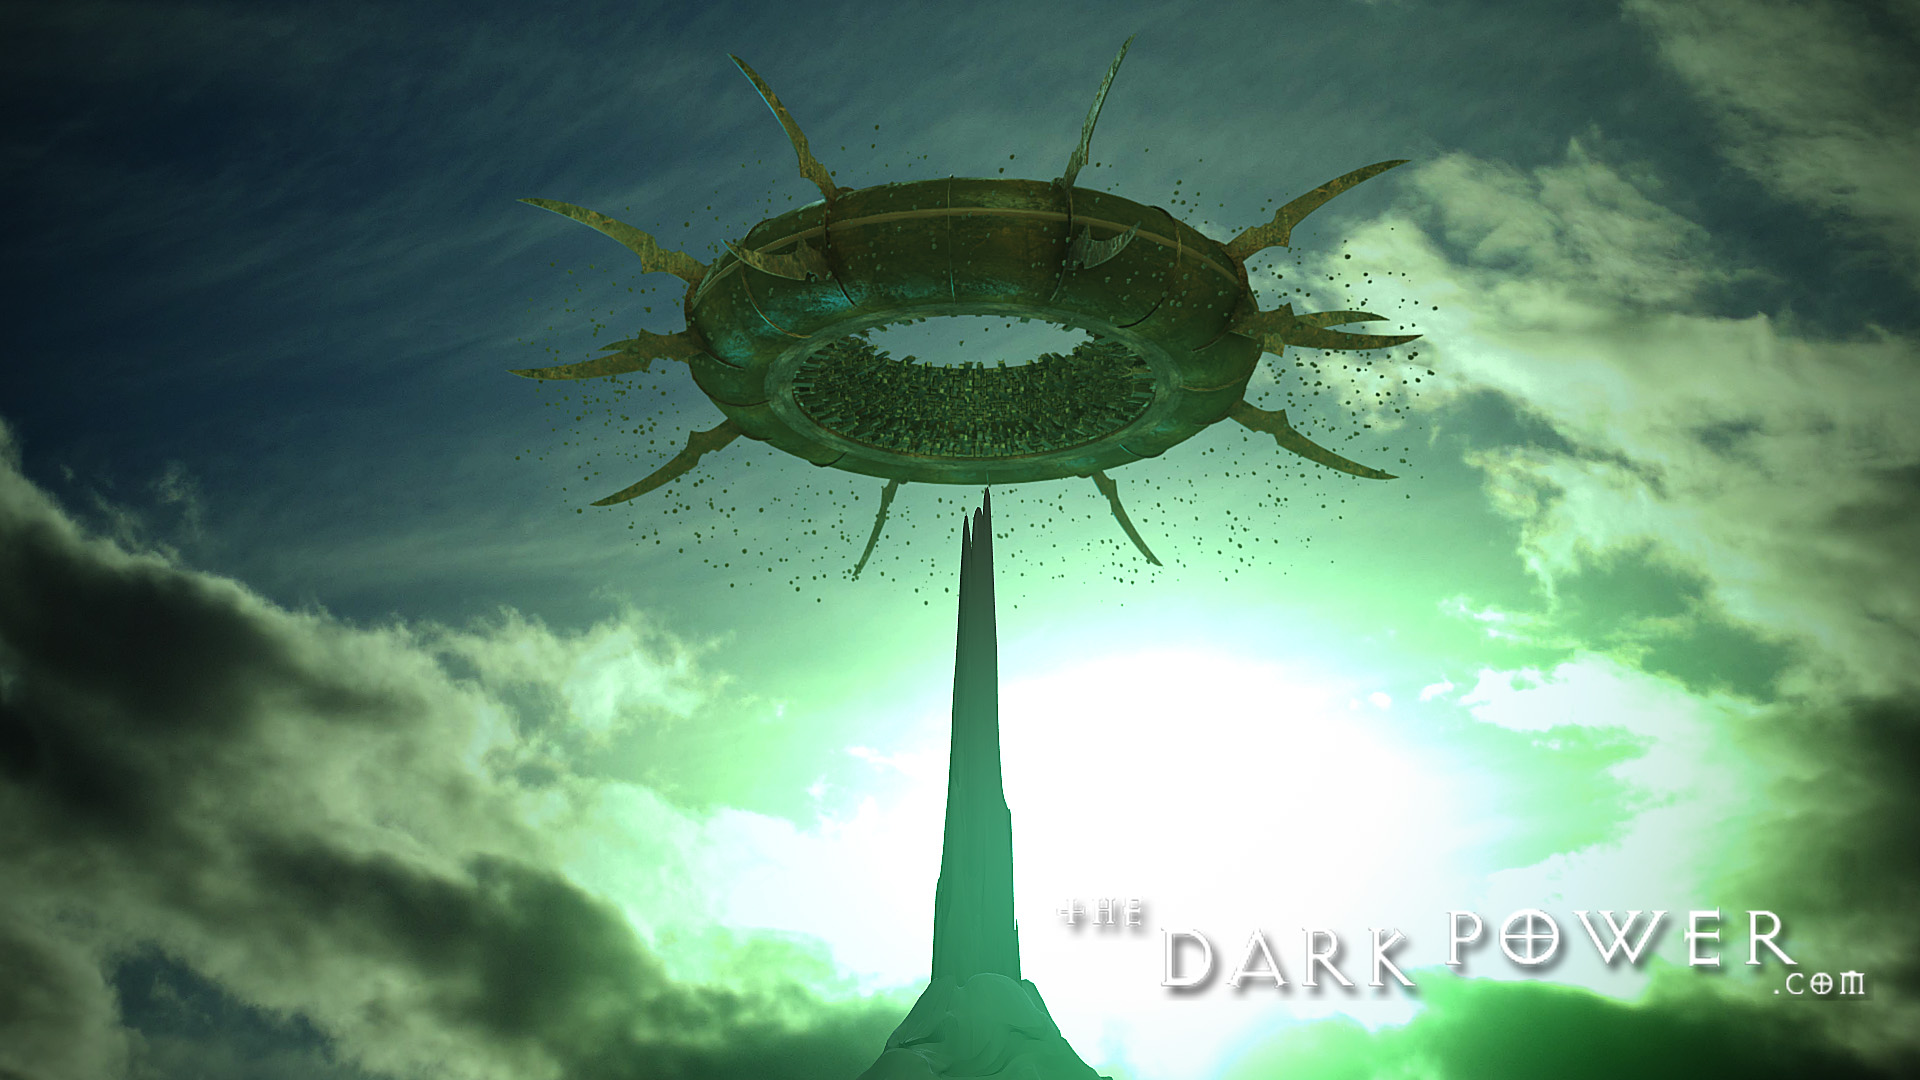 the-dark-power La città di Sigil in grafica CGI, screenshot 1 - by The Dark Power (Joe) thedarkpower.com (2018-11) © dell'autore, tutti i diritti riservati